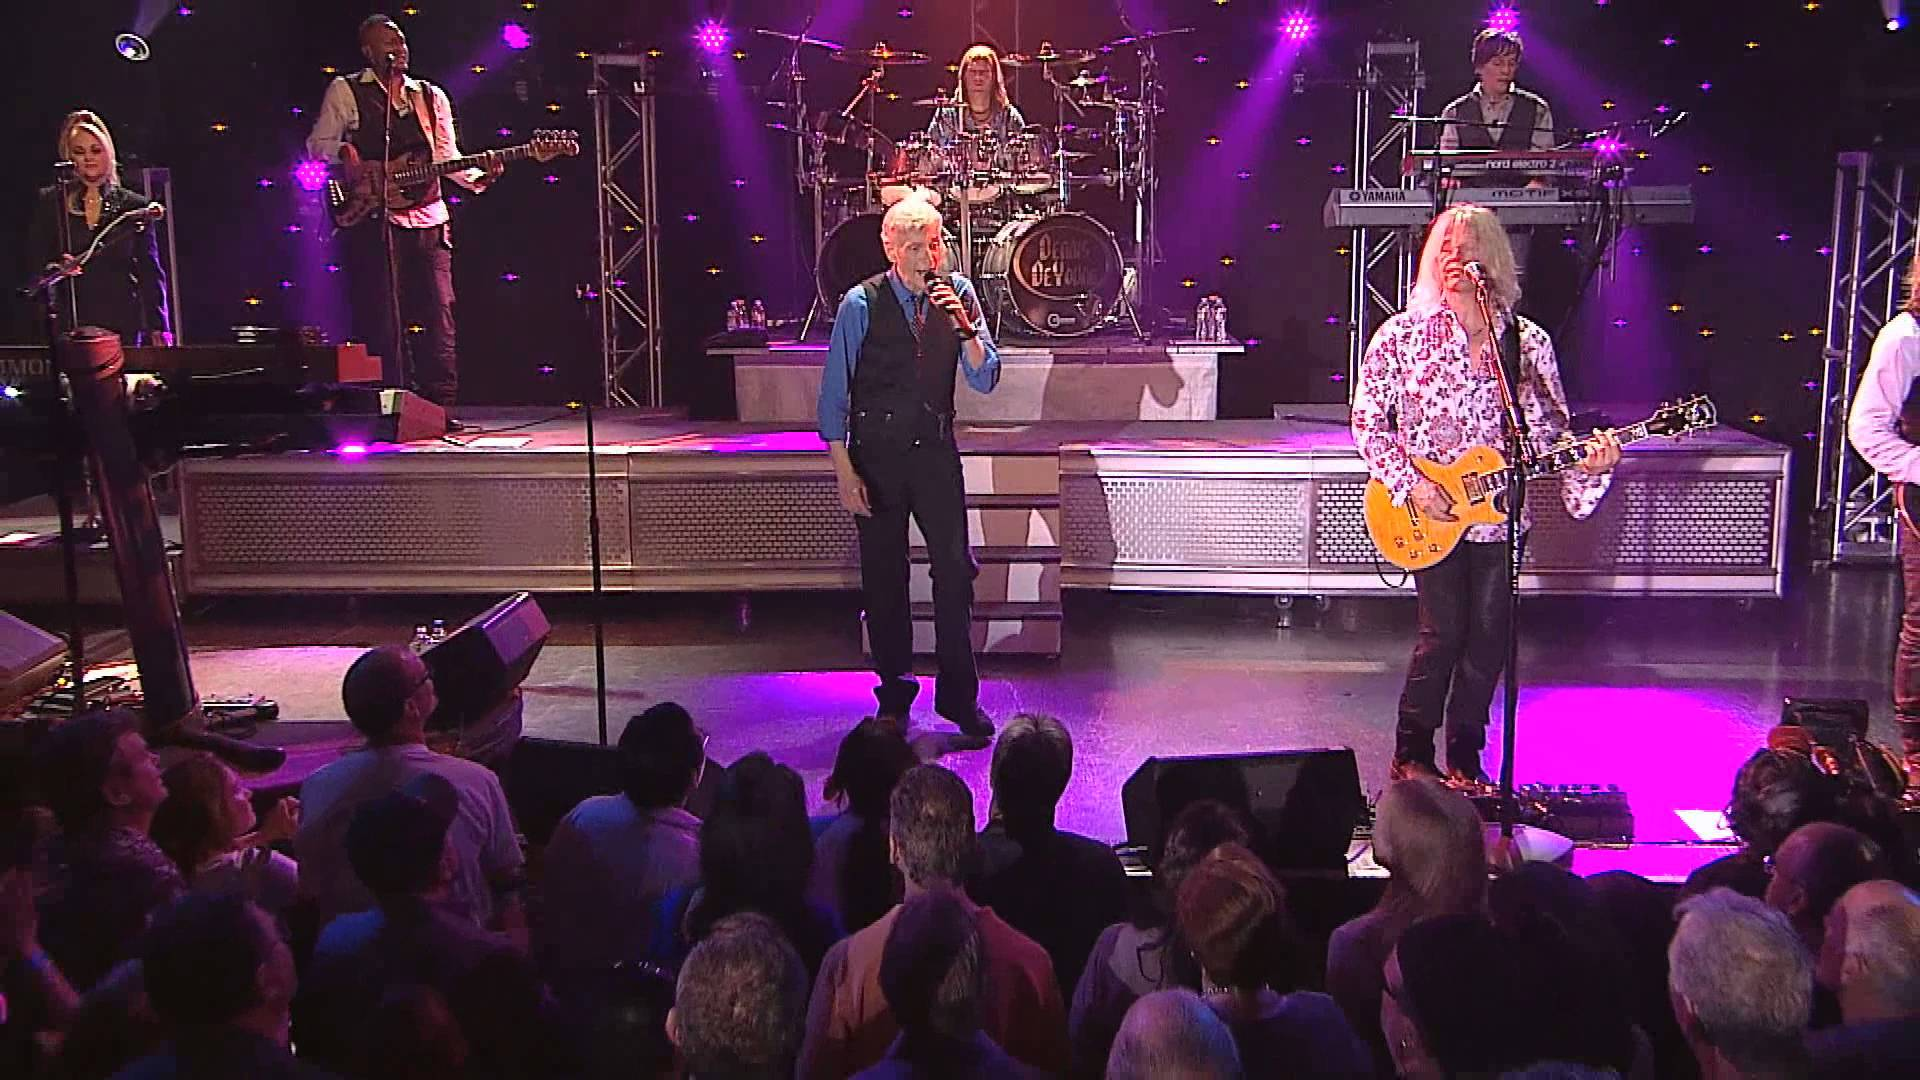 Dennis DeYoung brings the music of Styx to Arizona's Mesa Arts Center